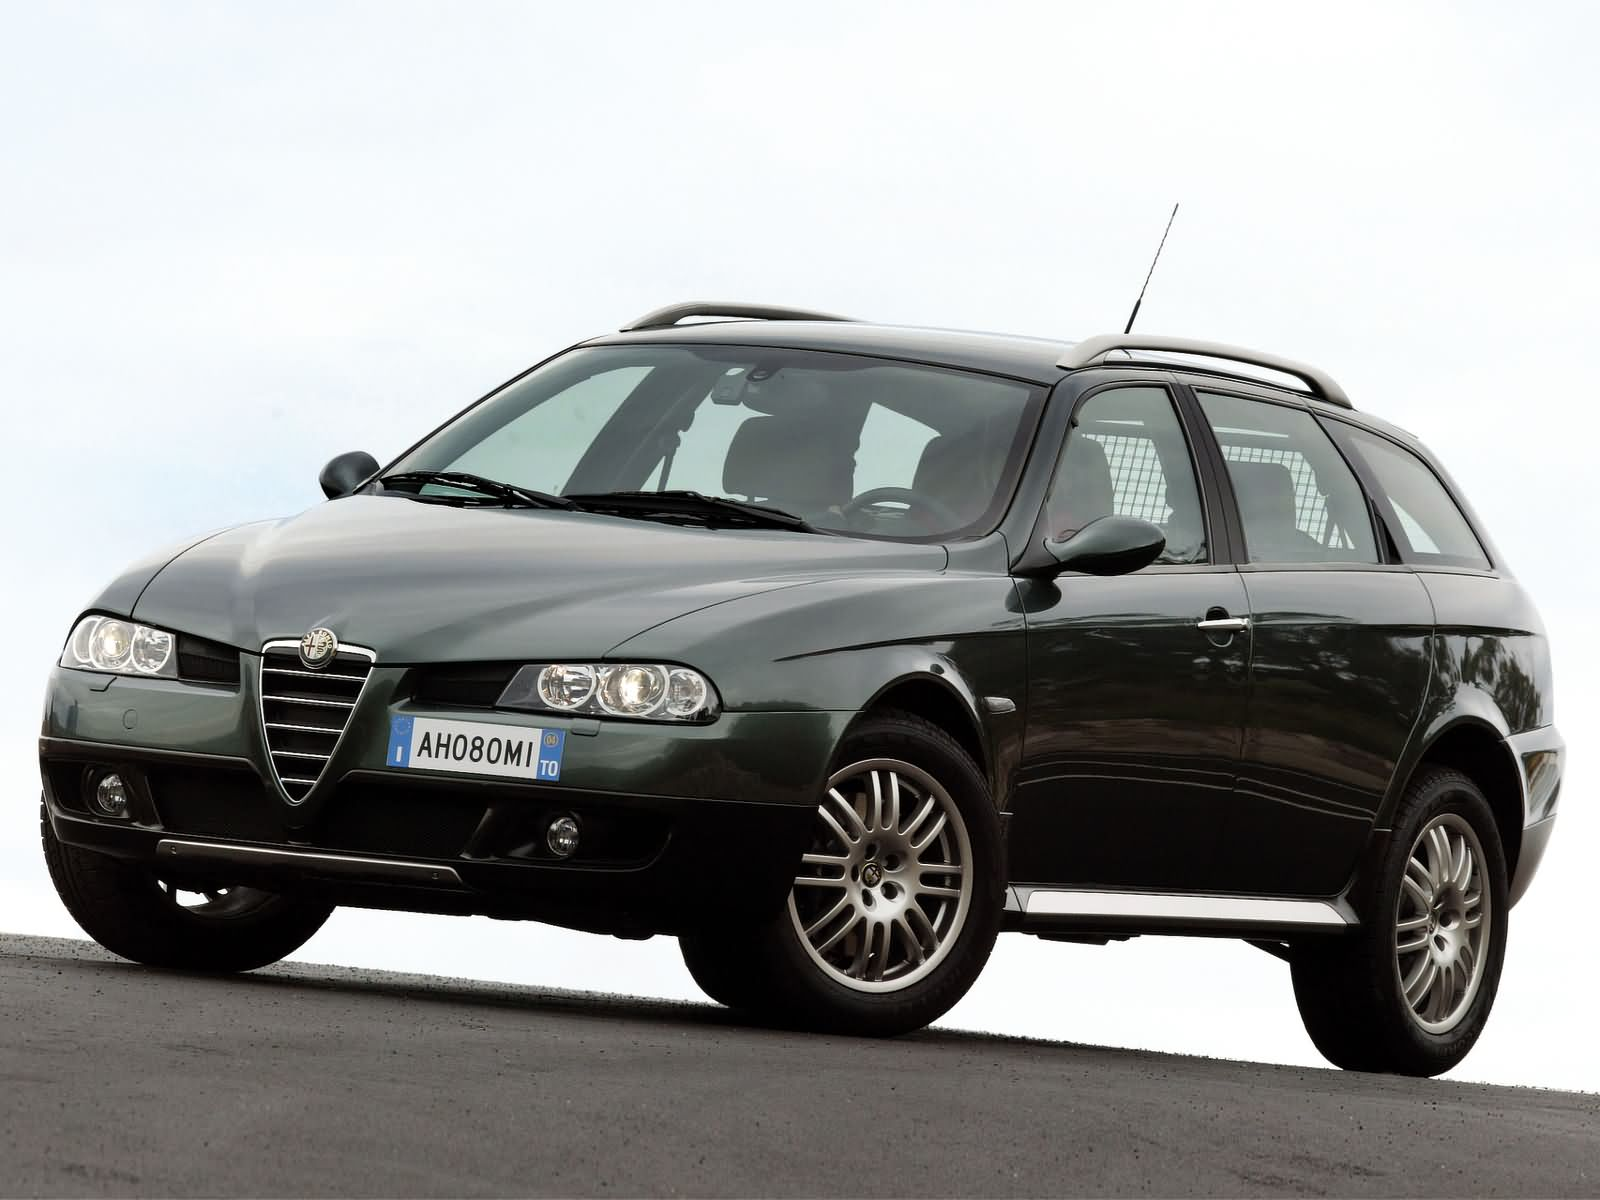 alfa romeo 156 crosswagon 1 9 16v jtd m jet 150 hp car technical data power torque fuel tank. Black Bedroom Furniture Sets. Home Design Ideas